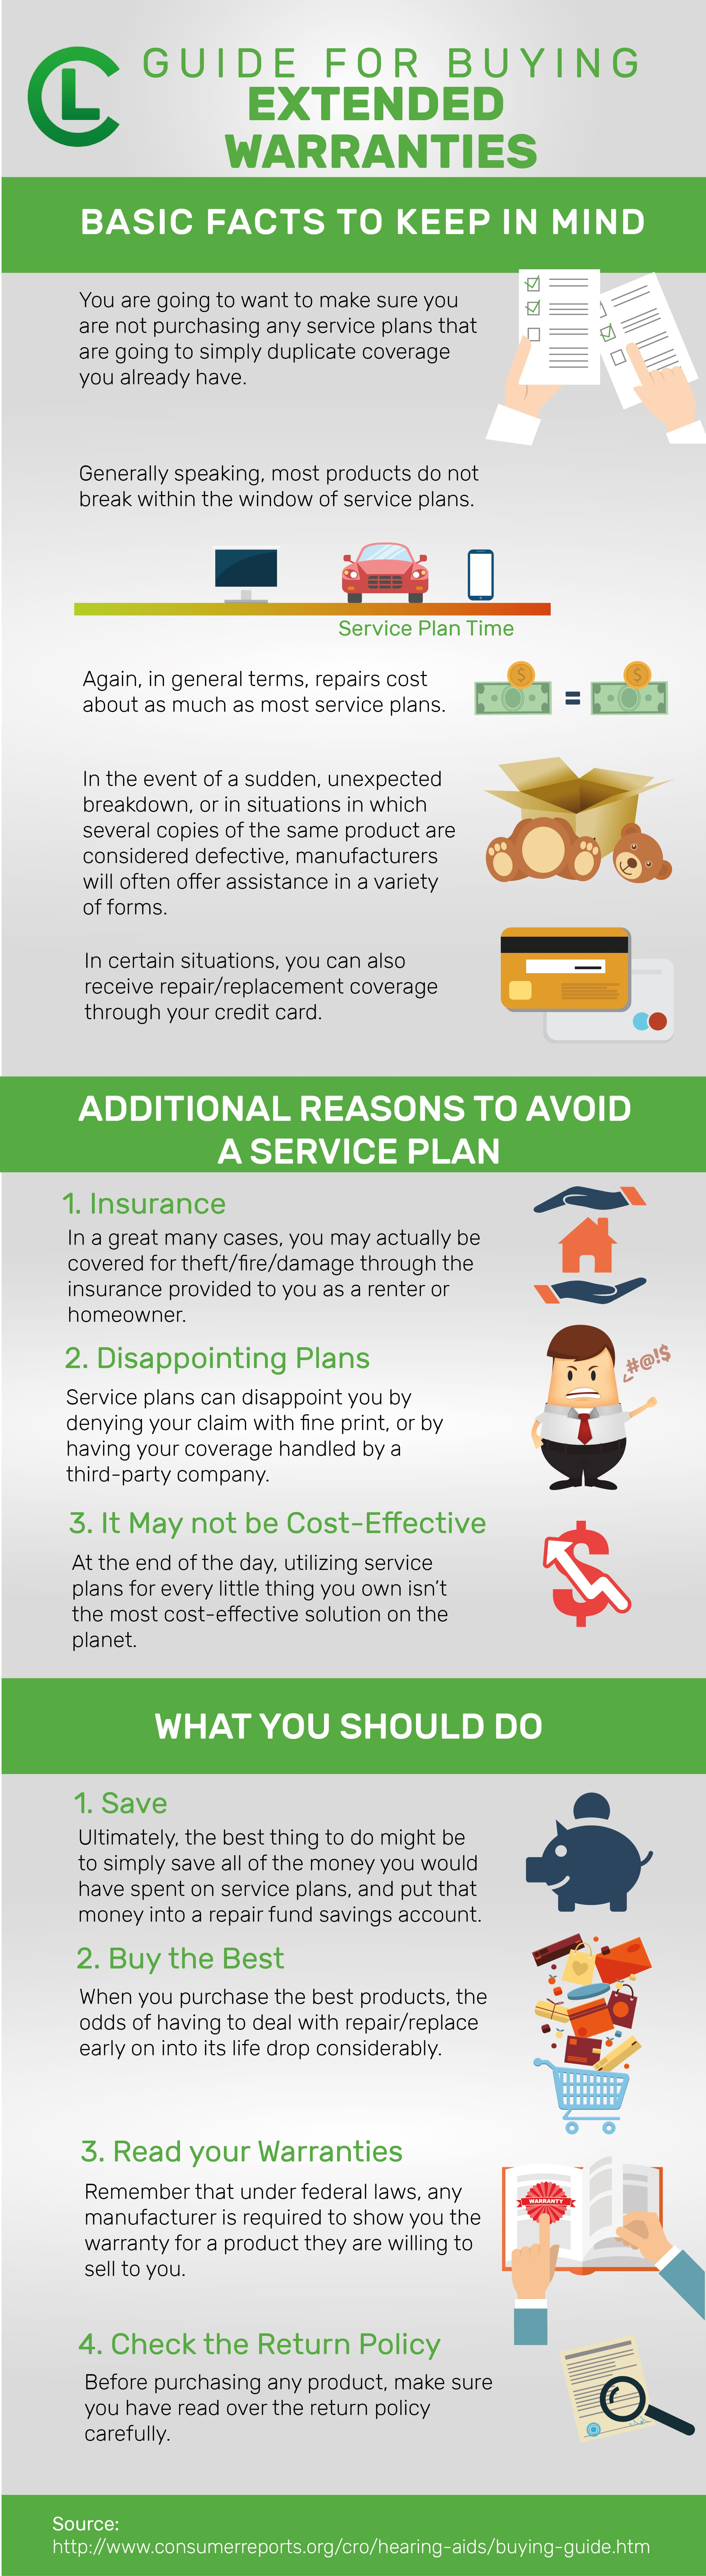 extended warranties infographic